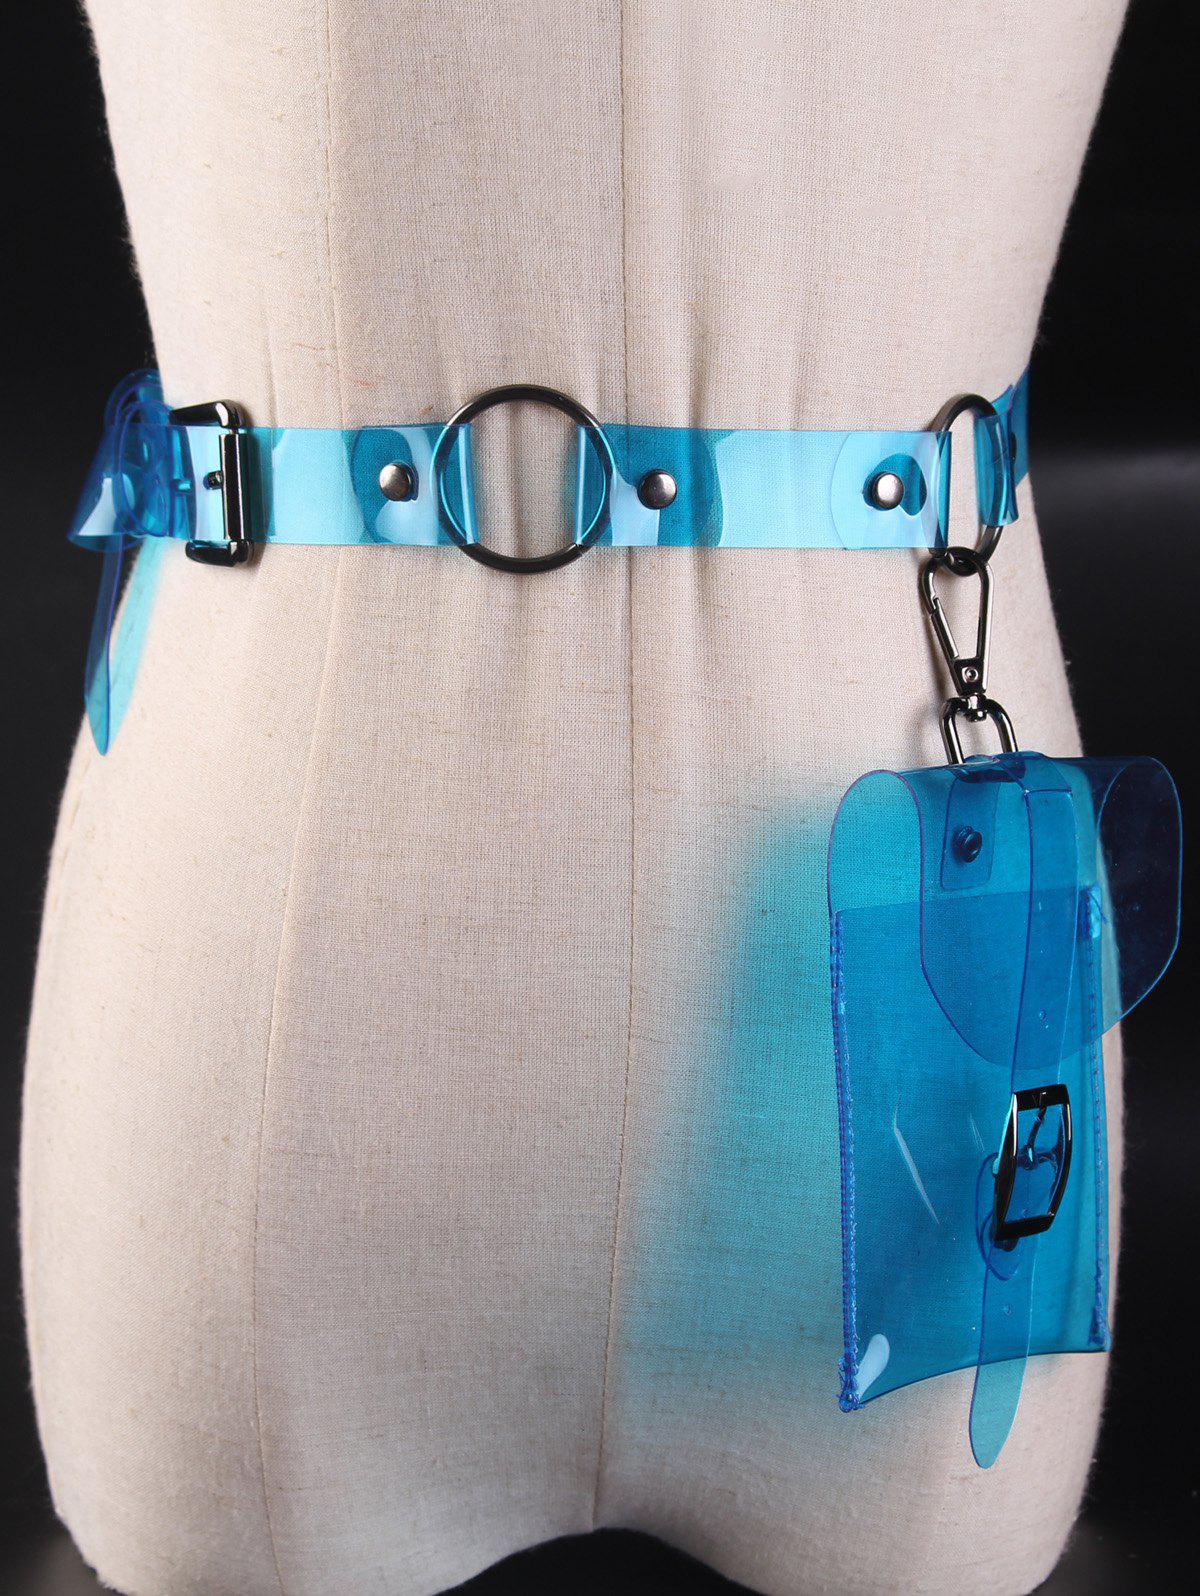 Shop Funny Bag Transparent Plastic Waist Belt